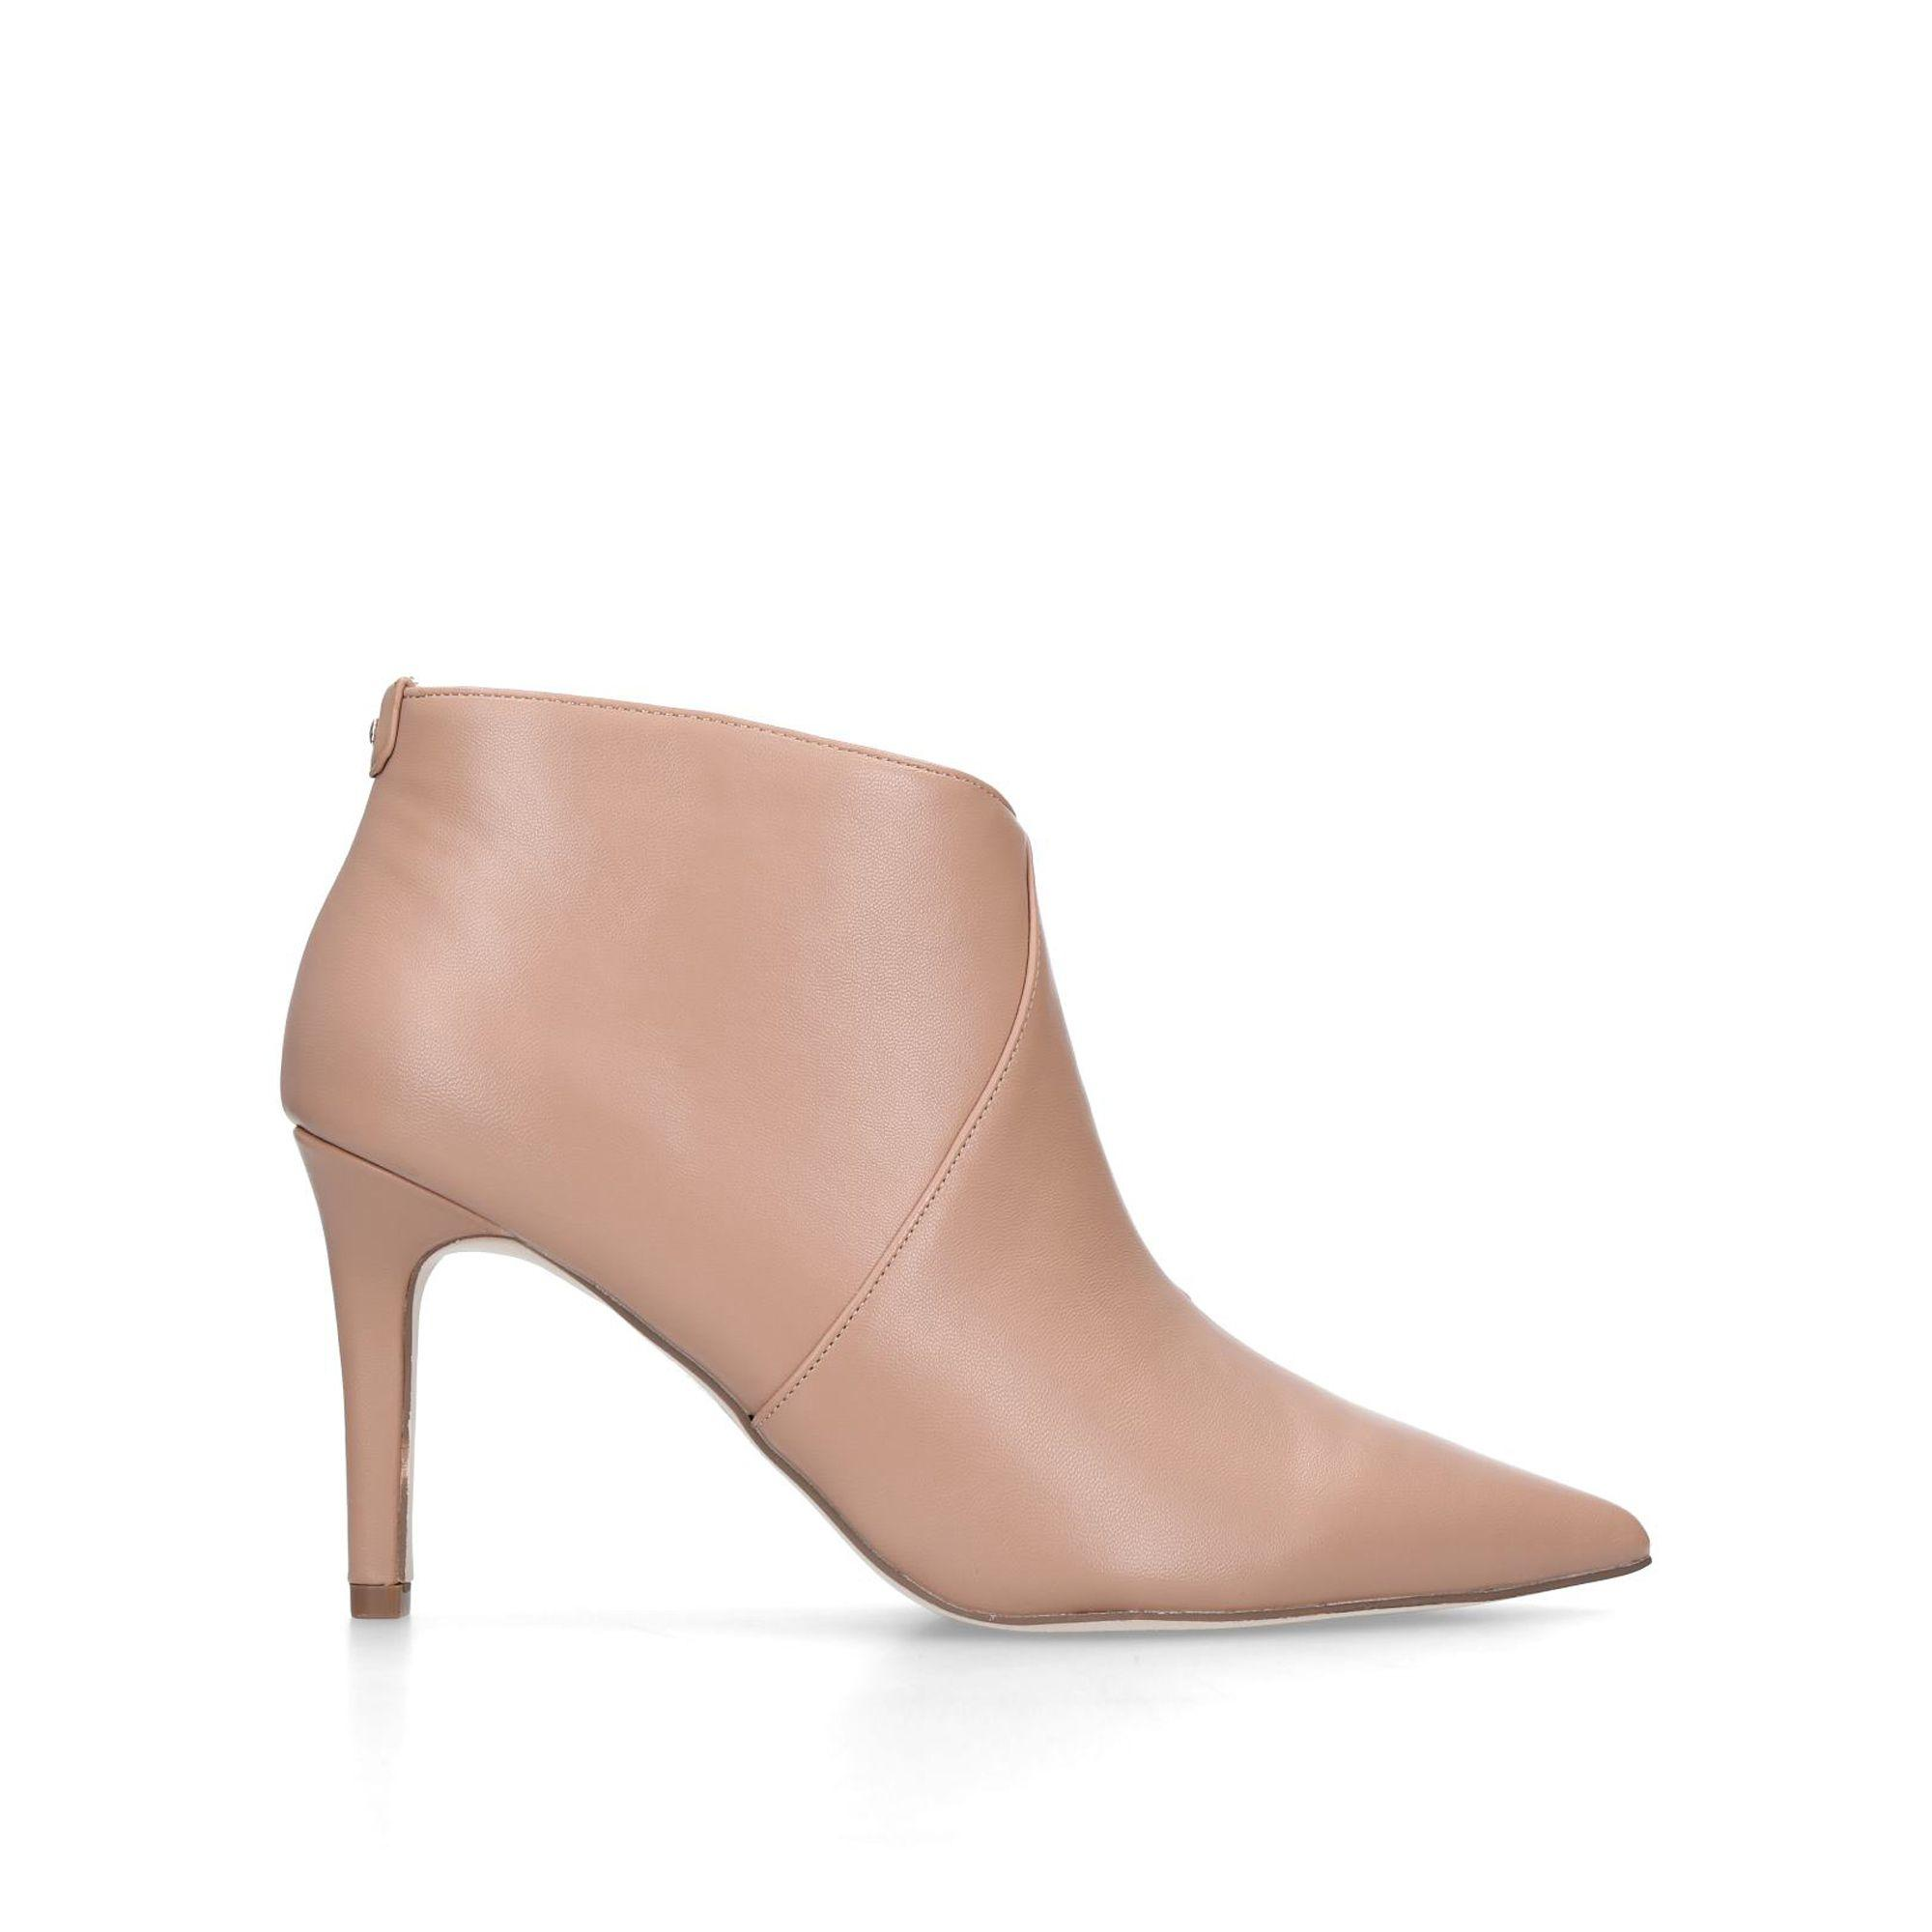 df9dfd5d905 Women's Natural Nude 'jiles' Mid Heel Ankle Boots